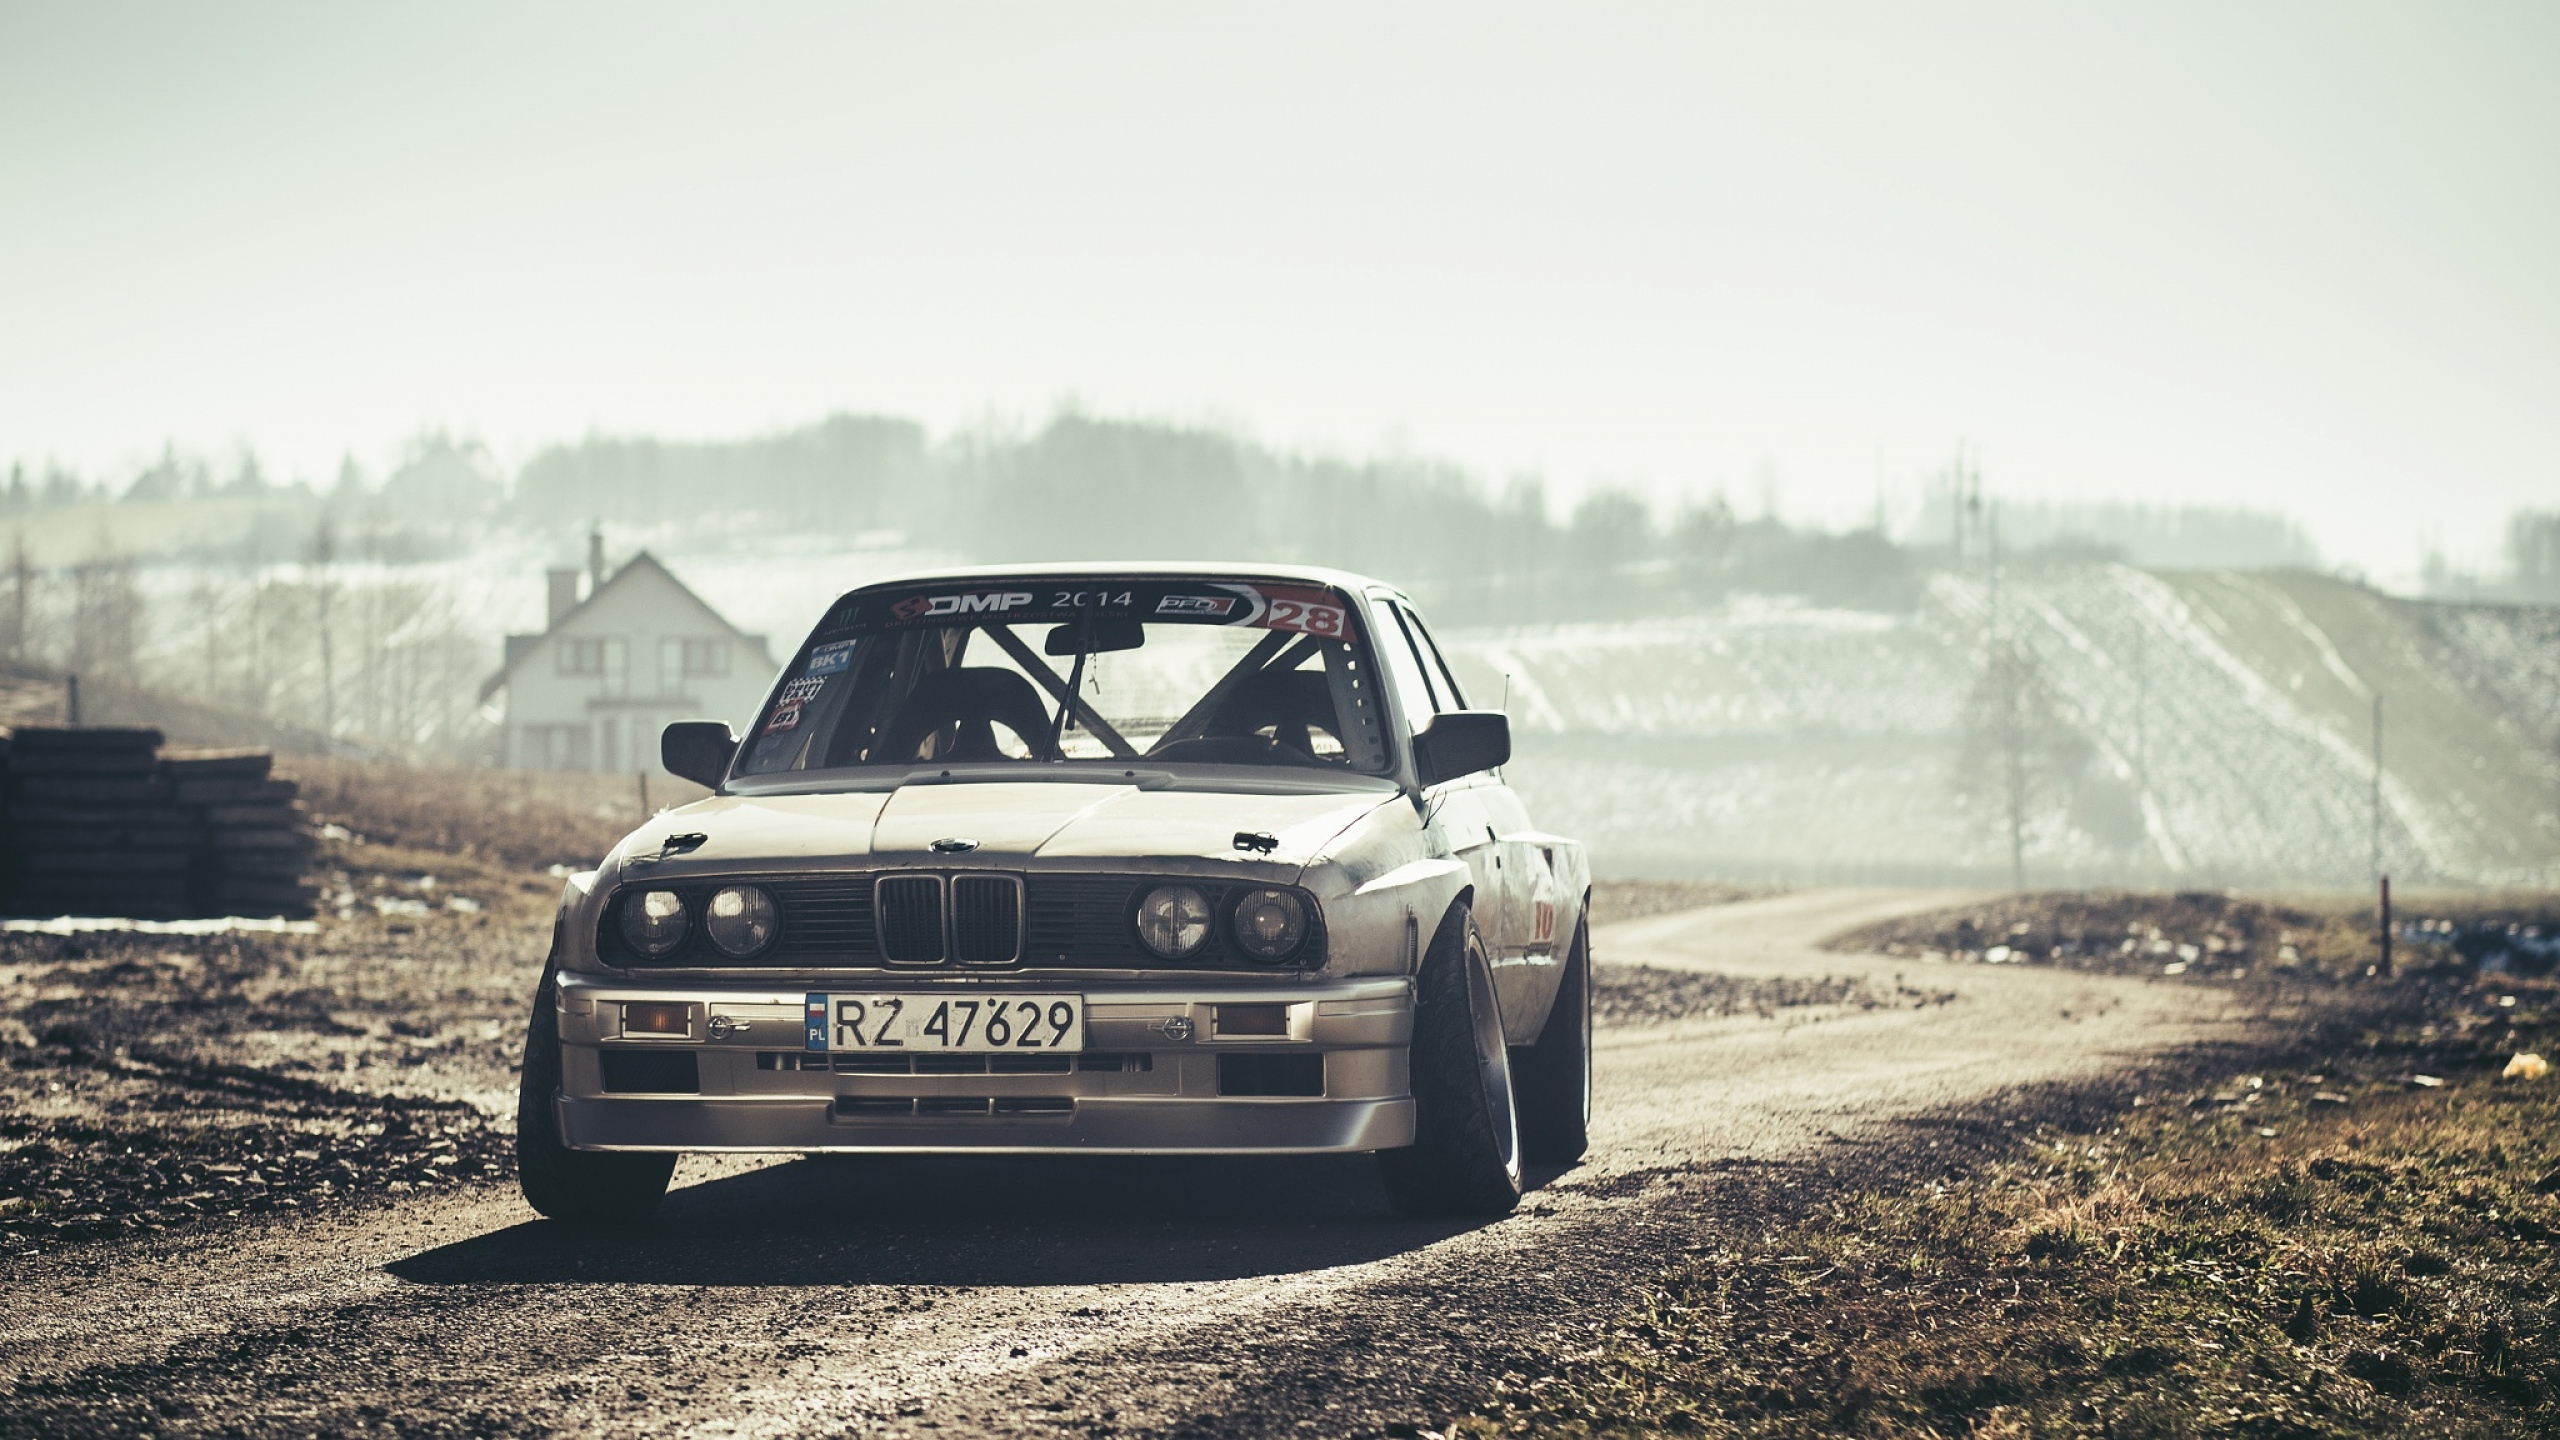 Free Download Bmw E30 Wallpapers Hd 2560x1440 For Your Desktop Mobile Tablet Explore 95 Old Bmw Wallpapers Old Bmw Wallpapers Bmw Wallpaper Bmw Wallpapers